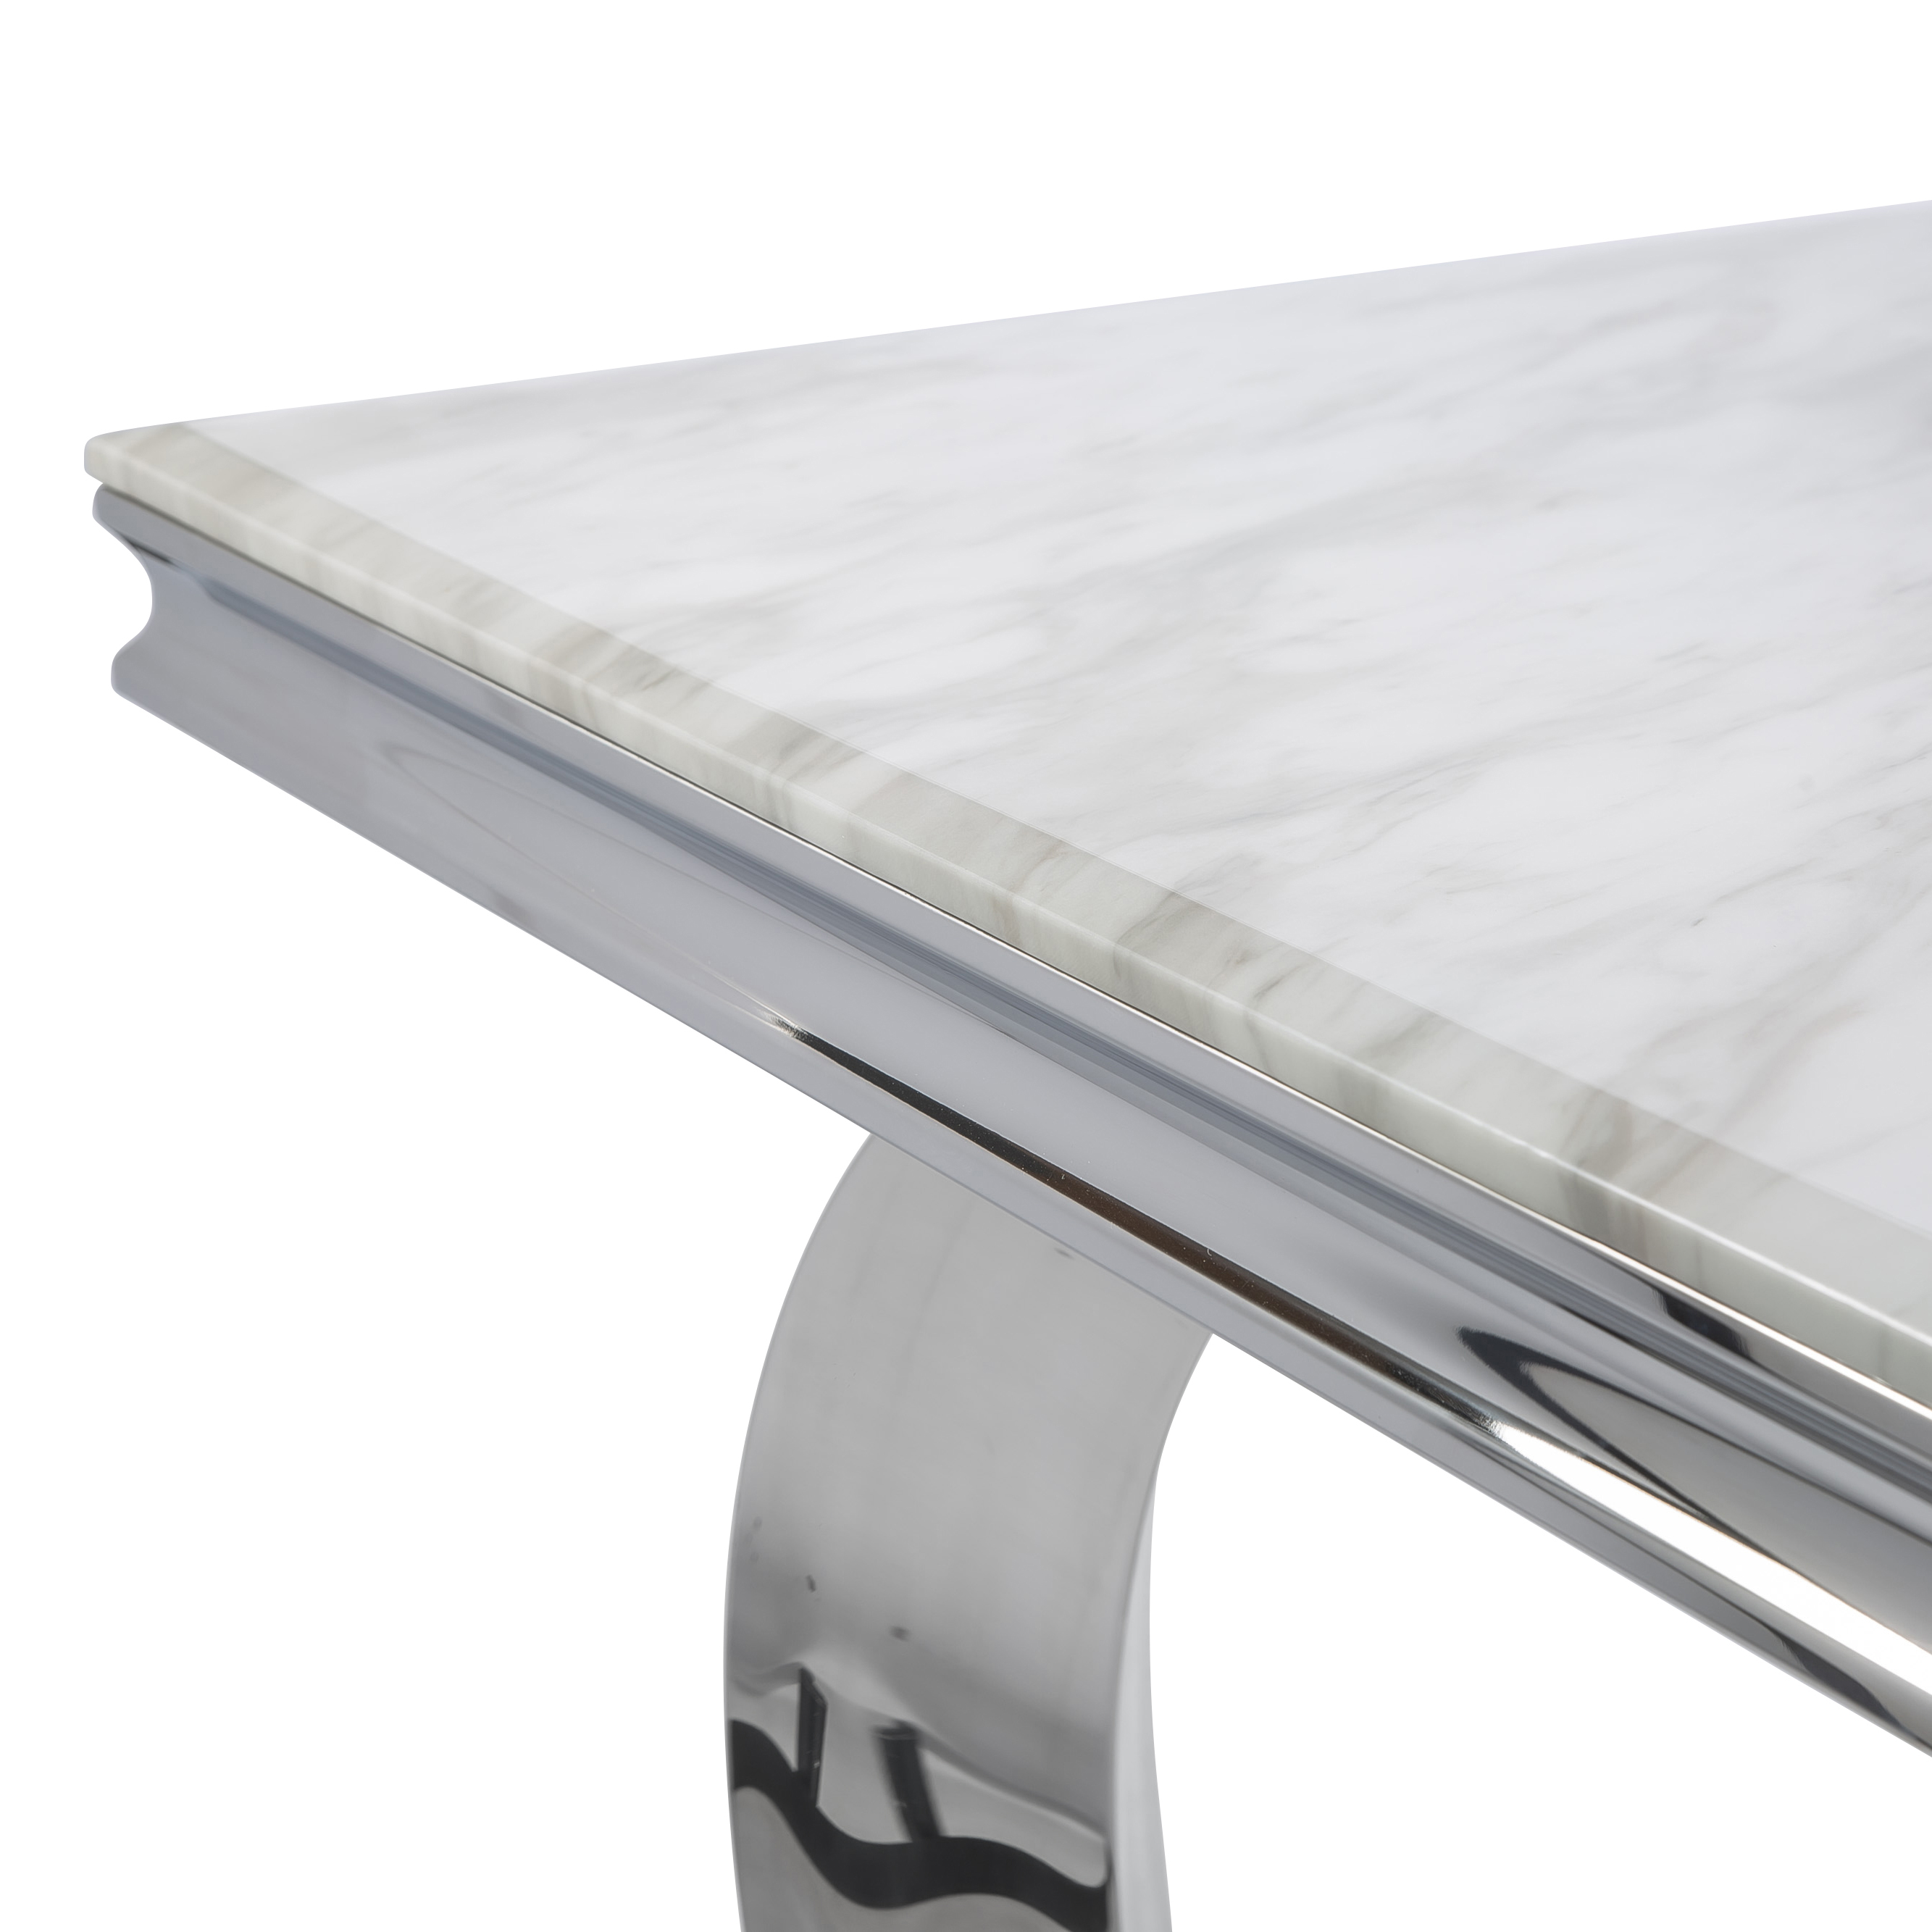 1.8M Pisa Polished Steel Dining Table with White Marble Top